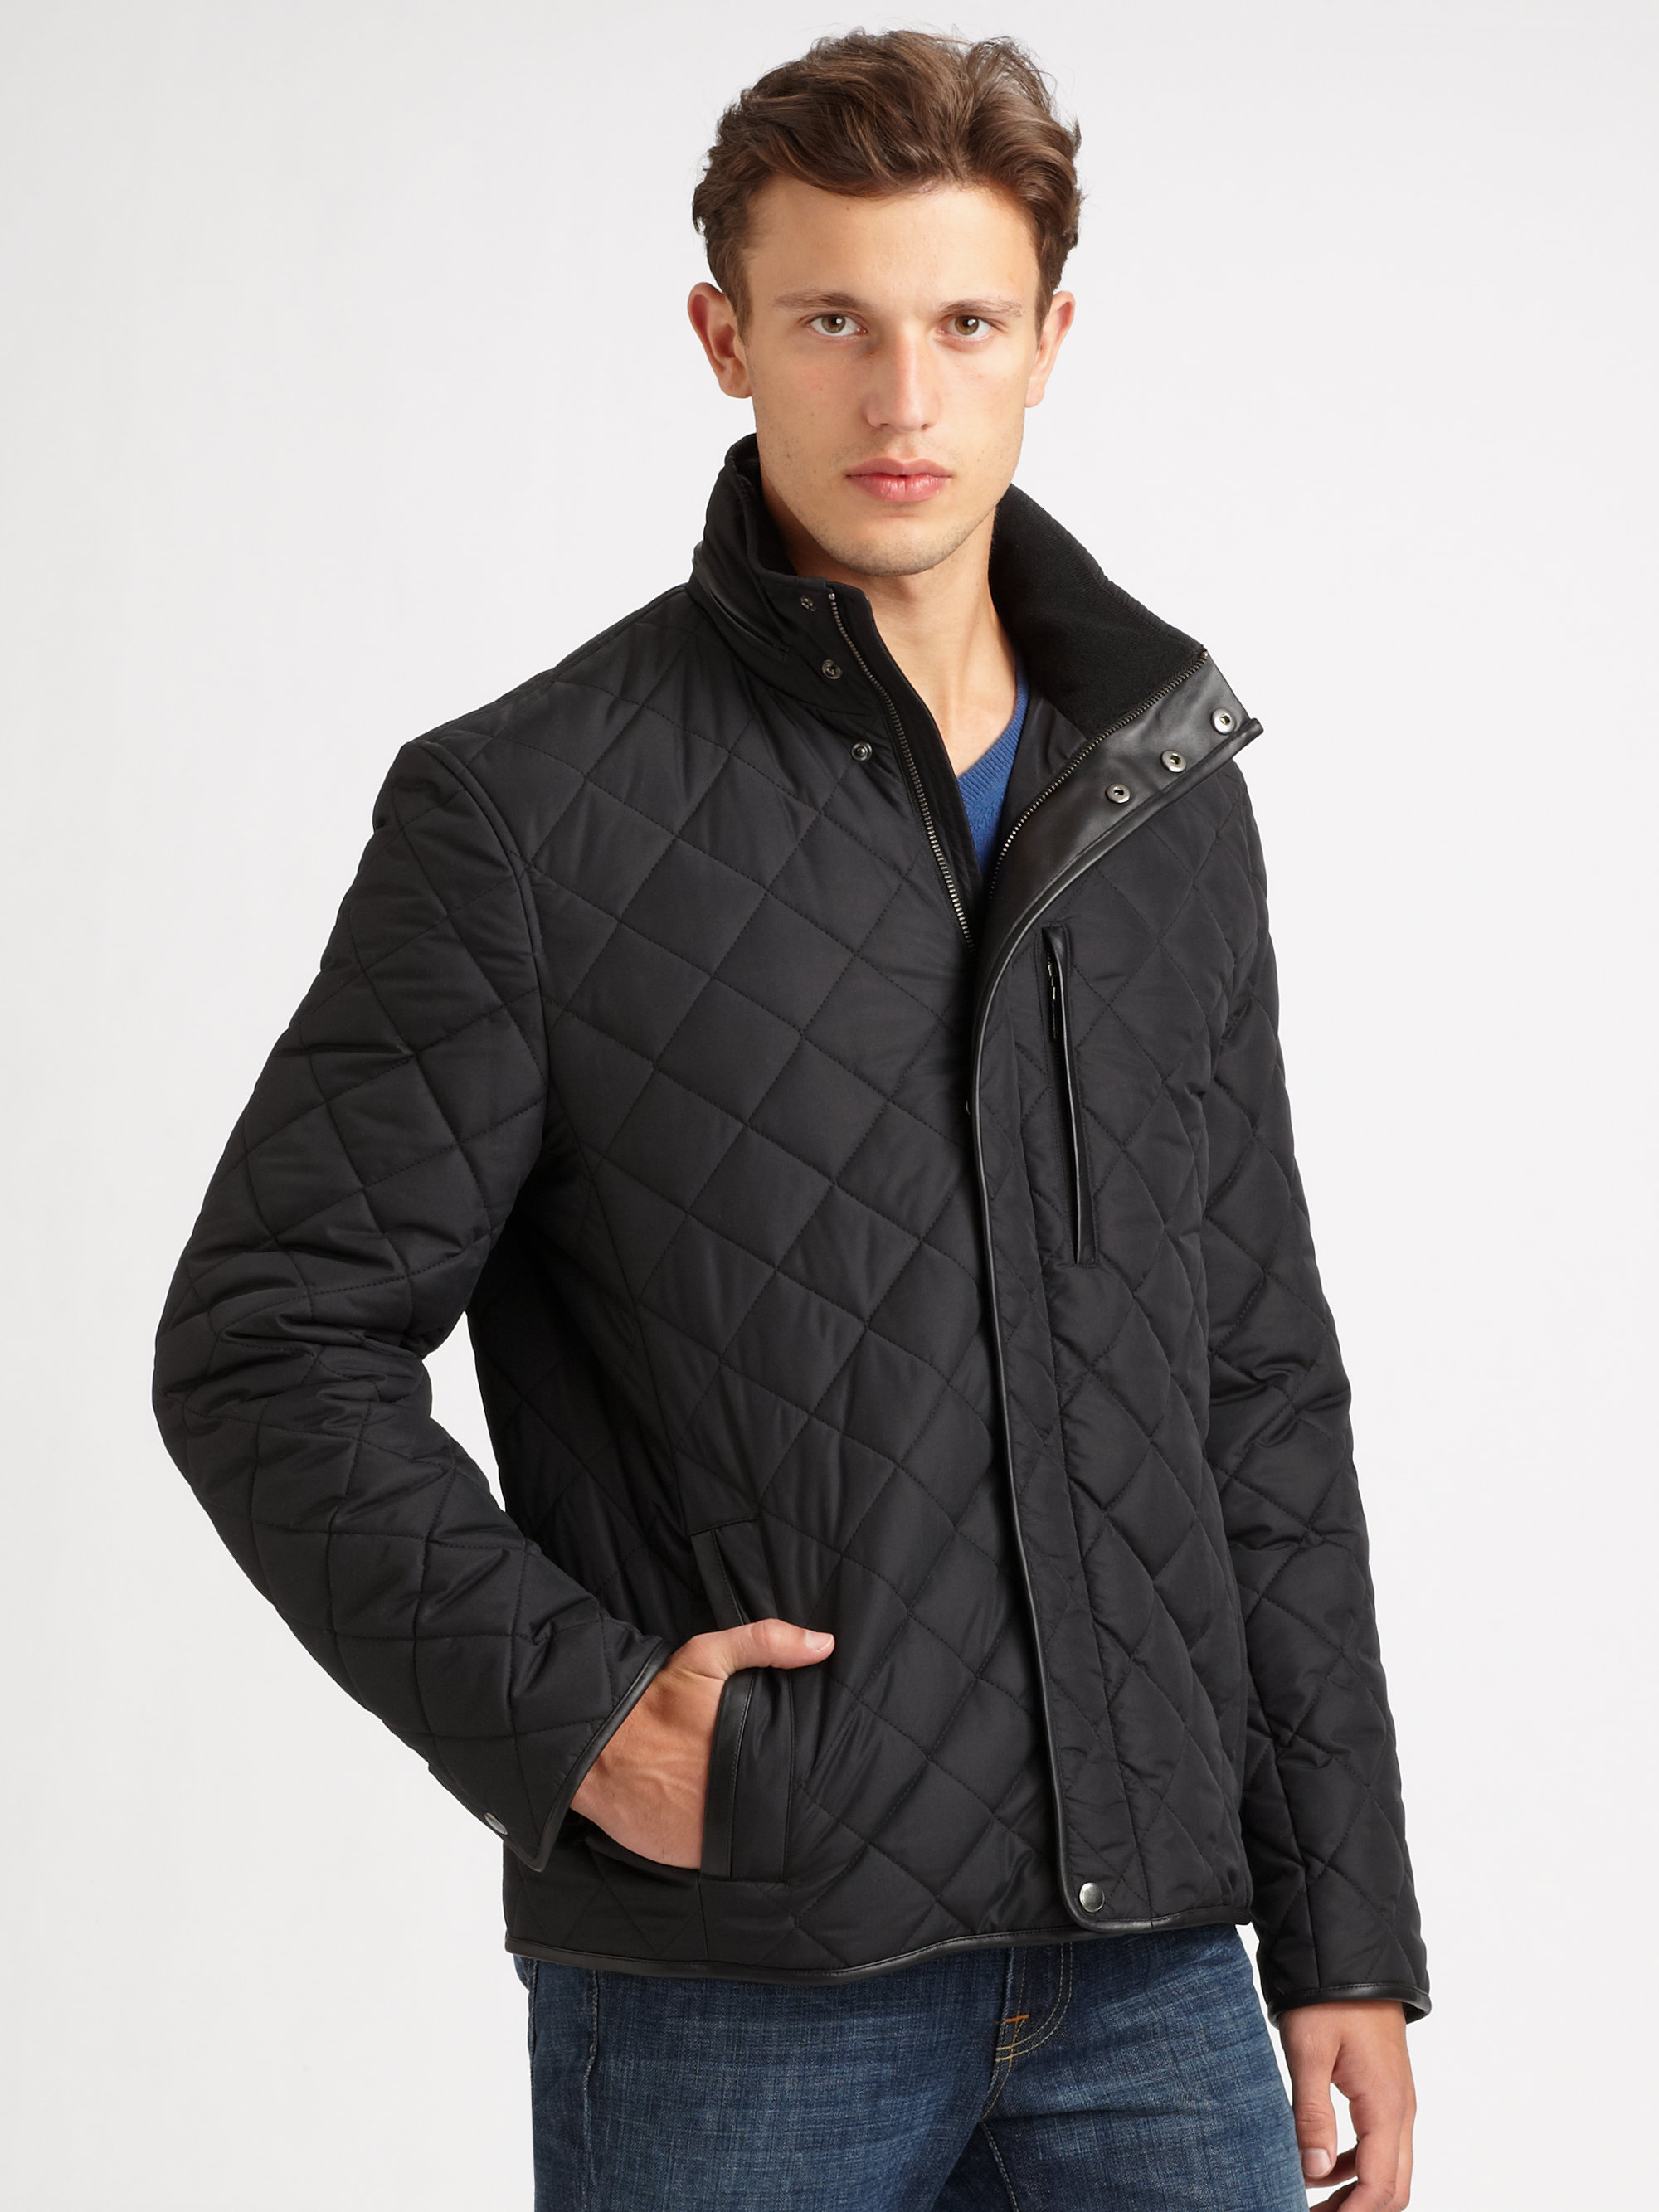 Cole Haan Quilted Jacket In Black For Men Lyst